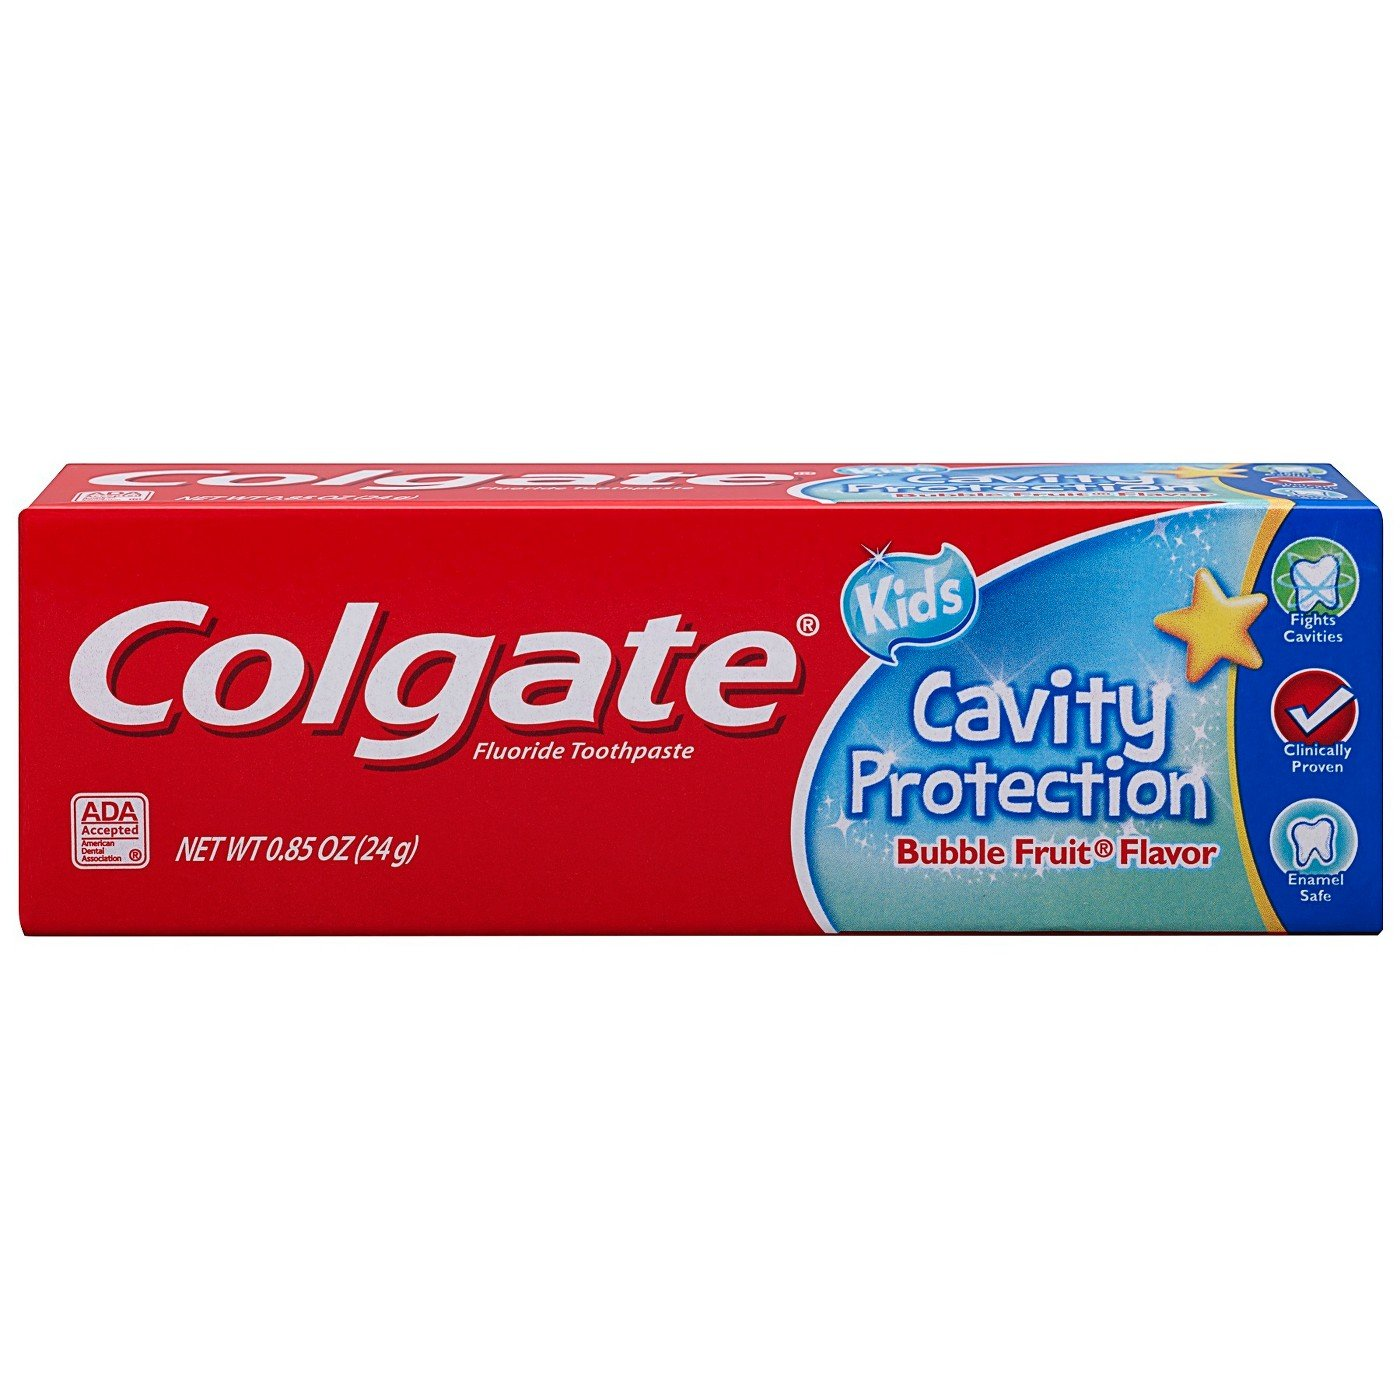 Colgate Kids Cavity Protection Fluoride Toothpaste, Bubble Fruit Flavor, Travel Size 0.85 oz (24g) - Pack of 12 by Colgate (Image #2)